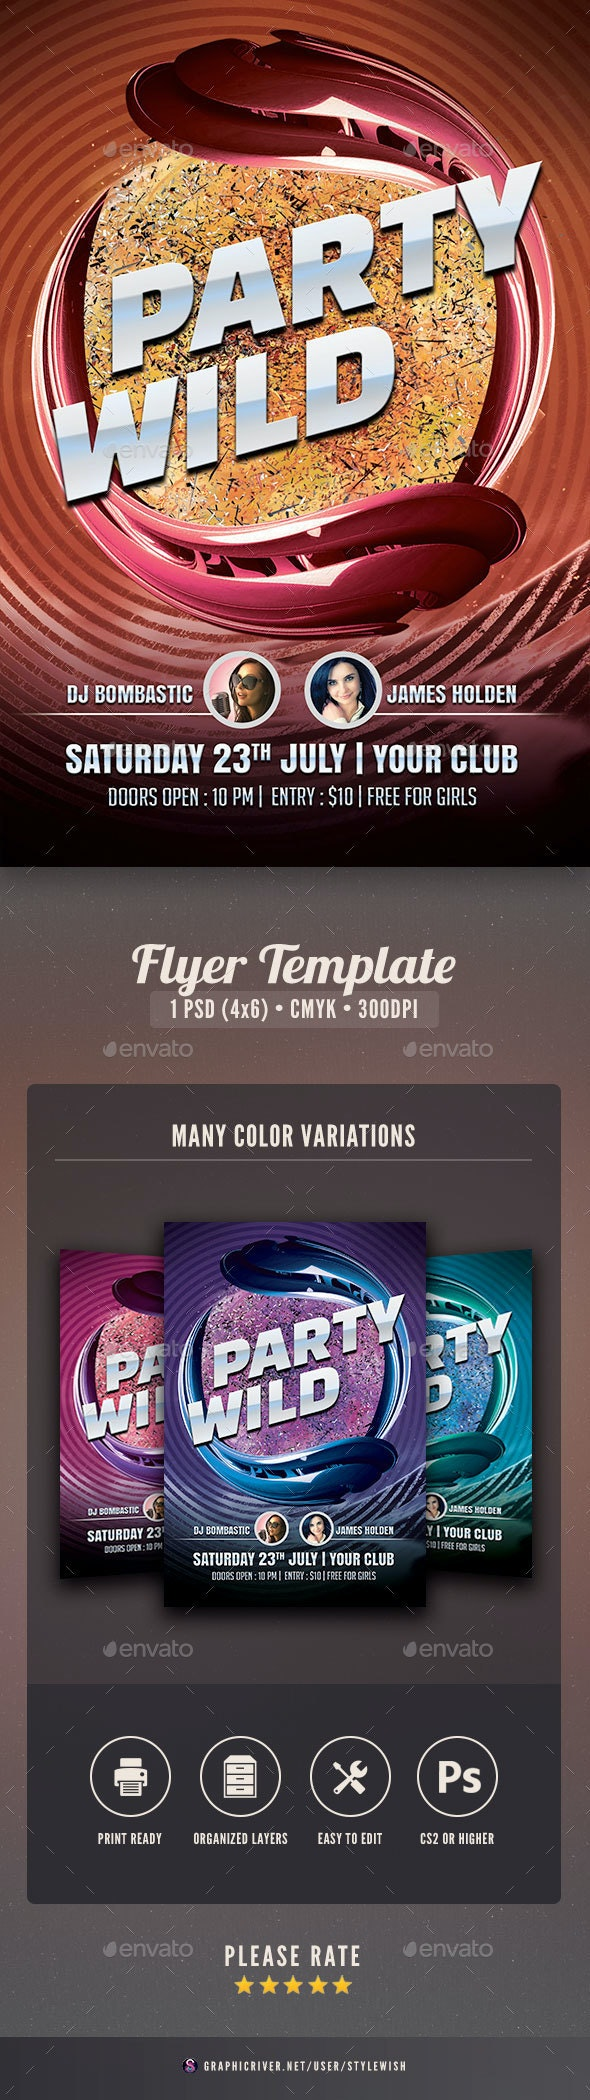 Party Wild Flyer - Clubs & Parties Events